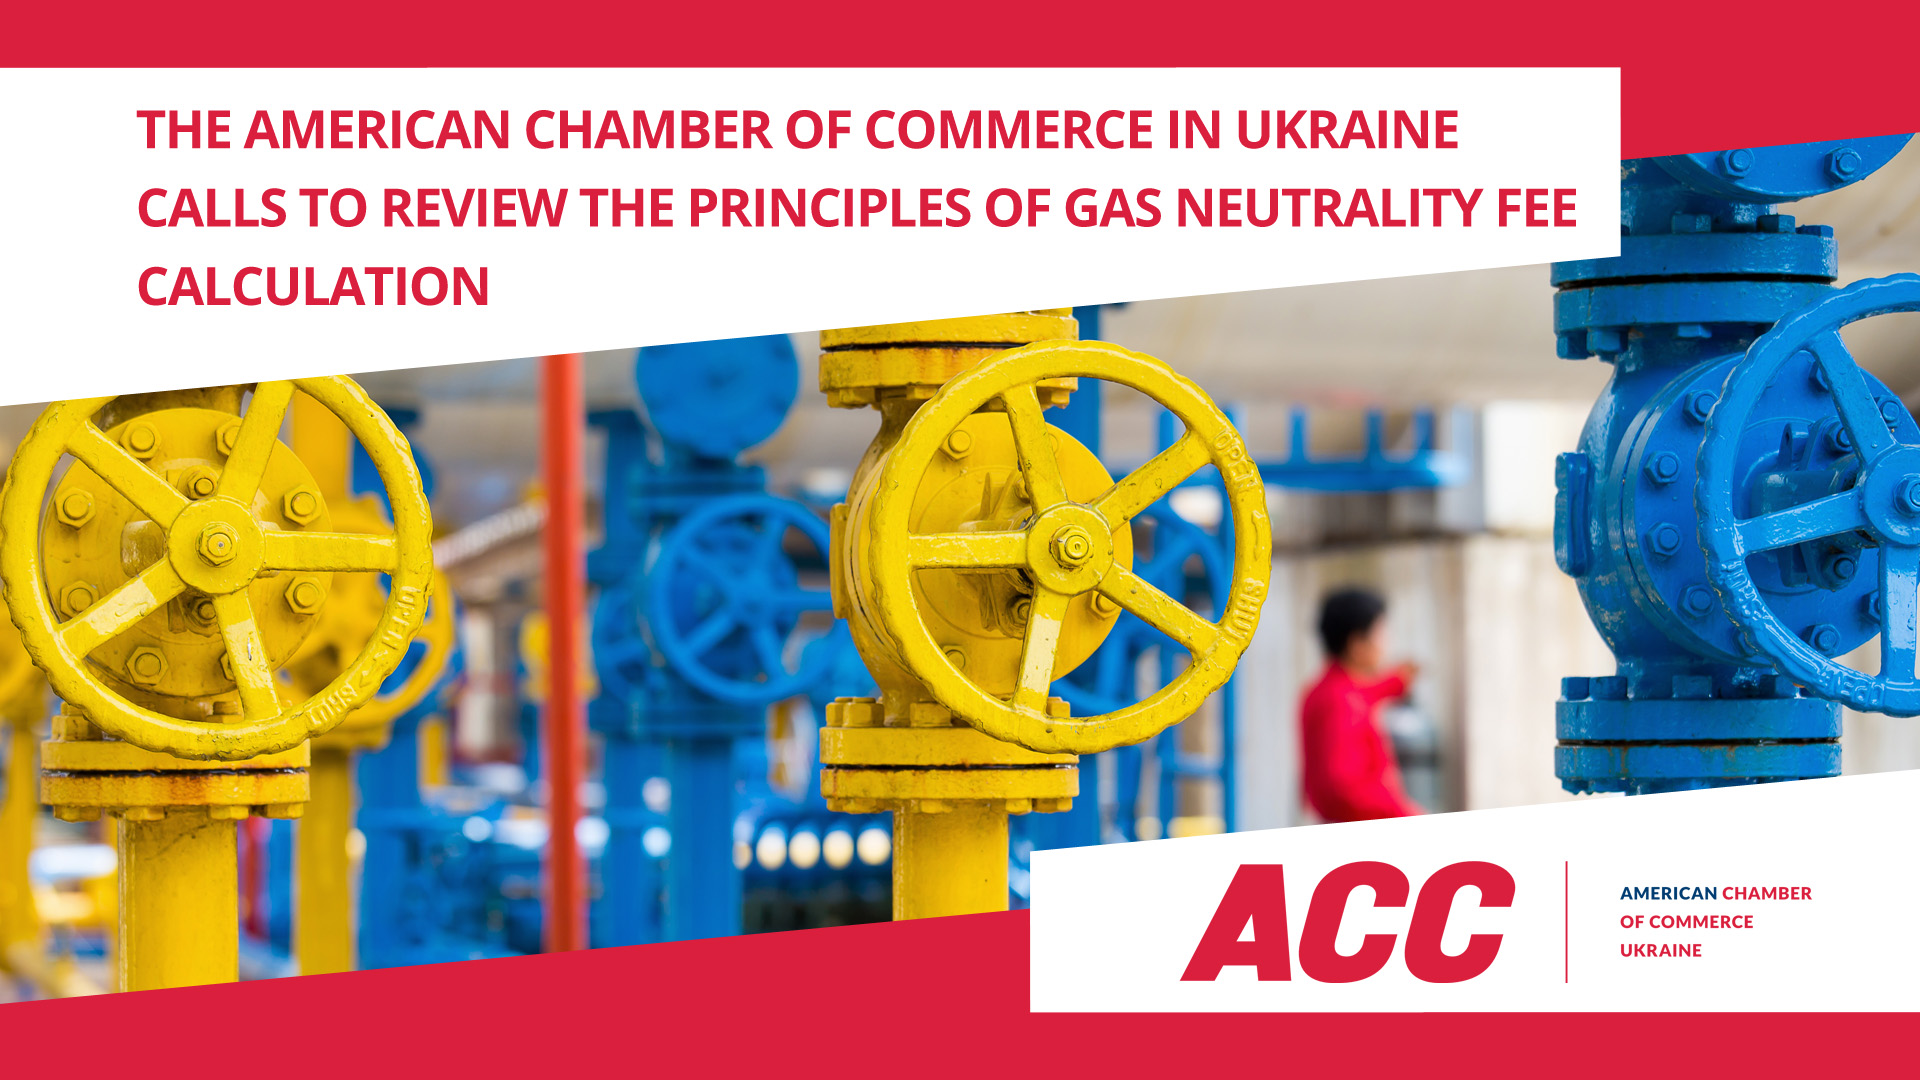 The American Chamber of Commerce in Ukraine Calls to Review the Principles of Gas Neutrality Fee Calculation